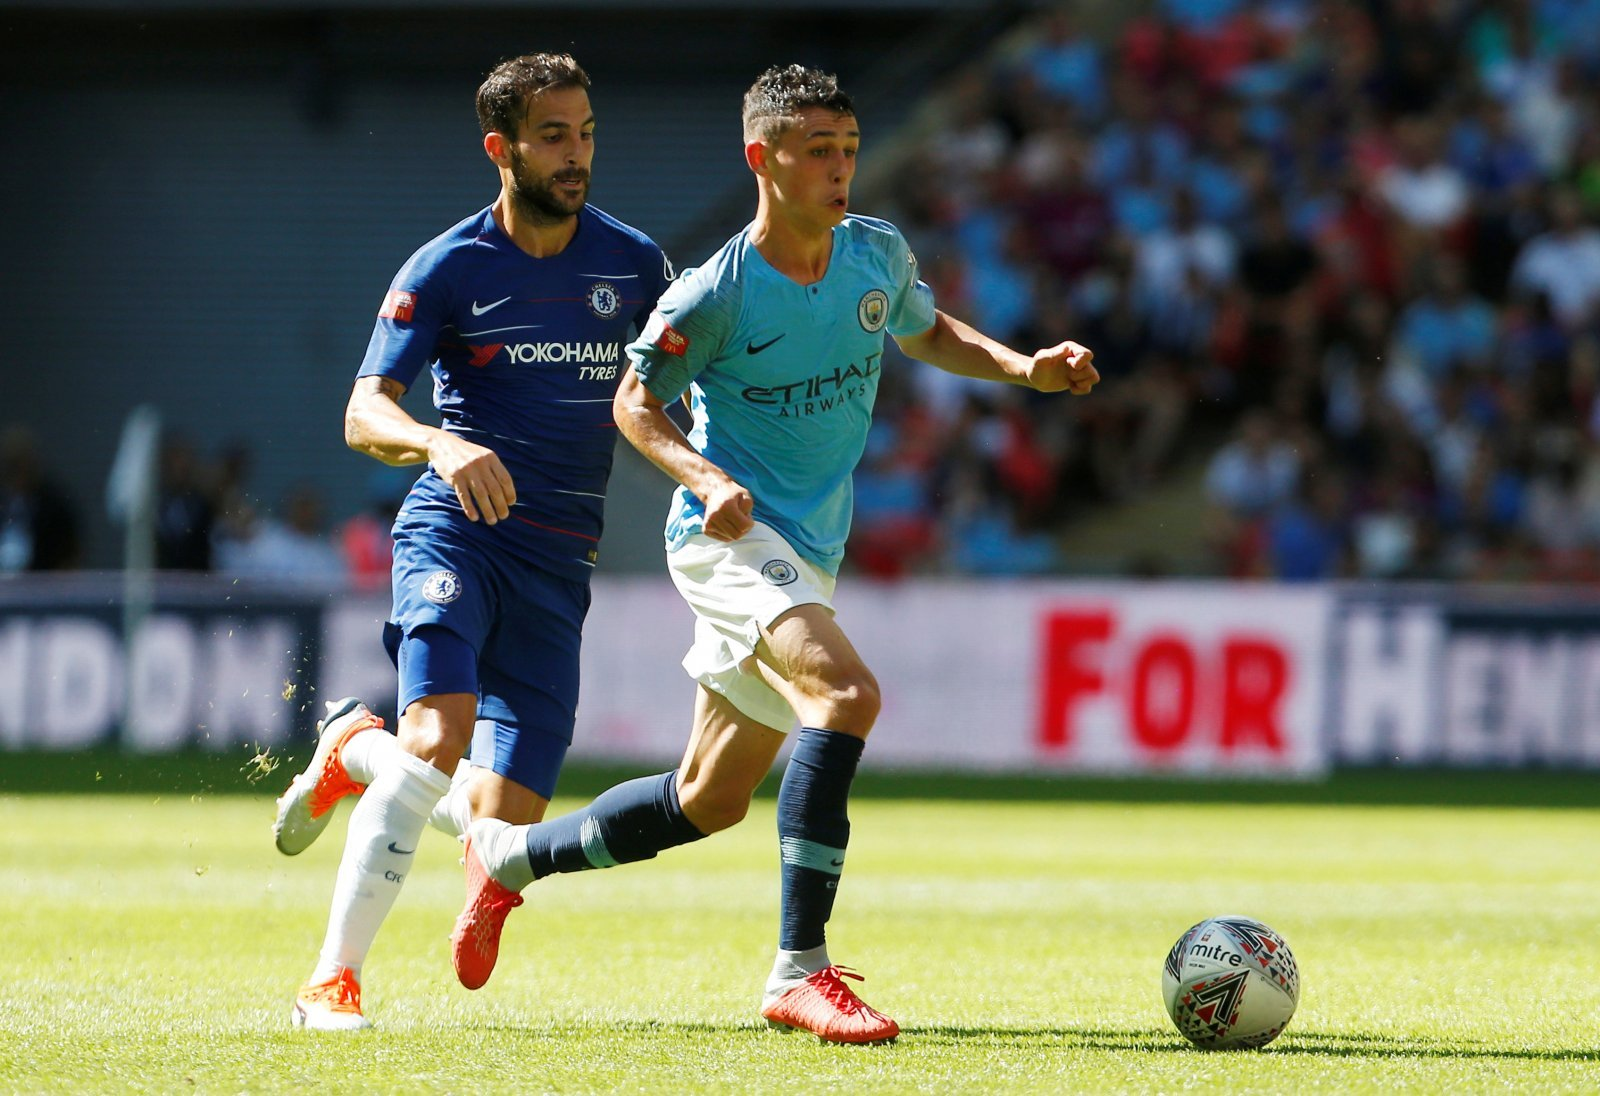 Phil Foden will be ready to come of age and replace David Silva in 2020